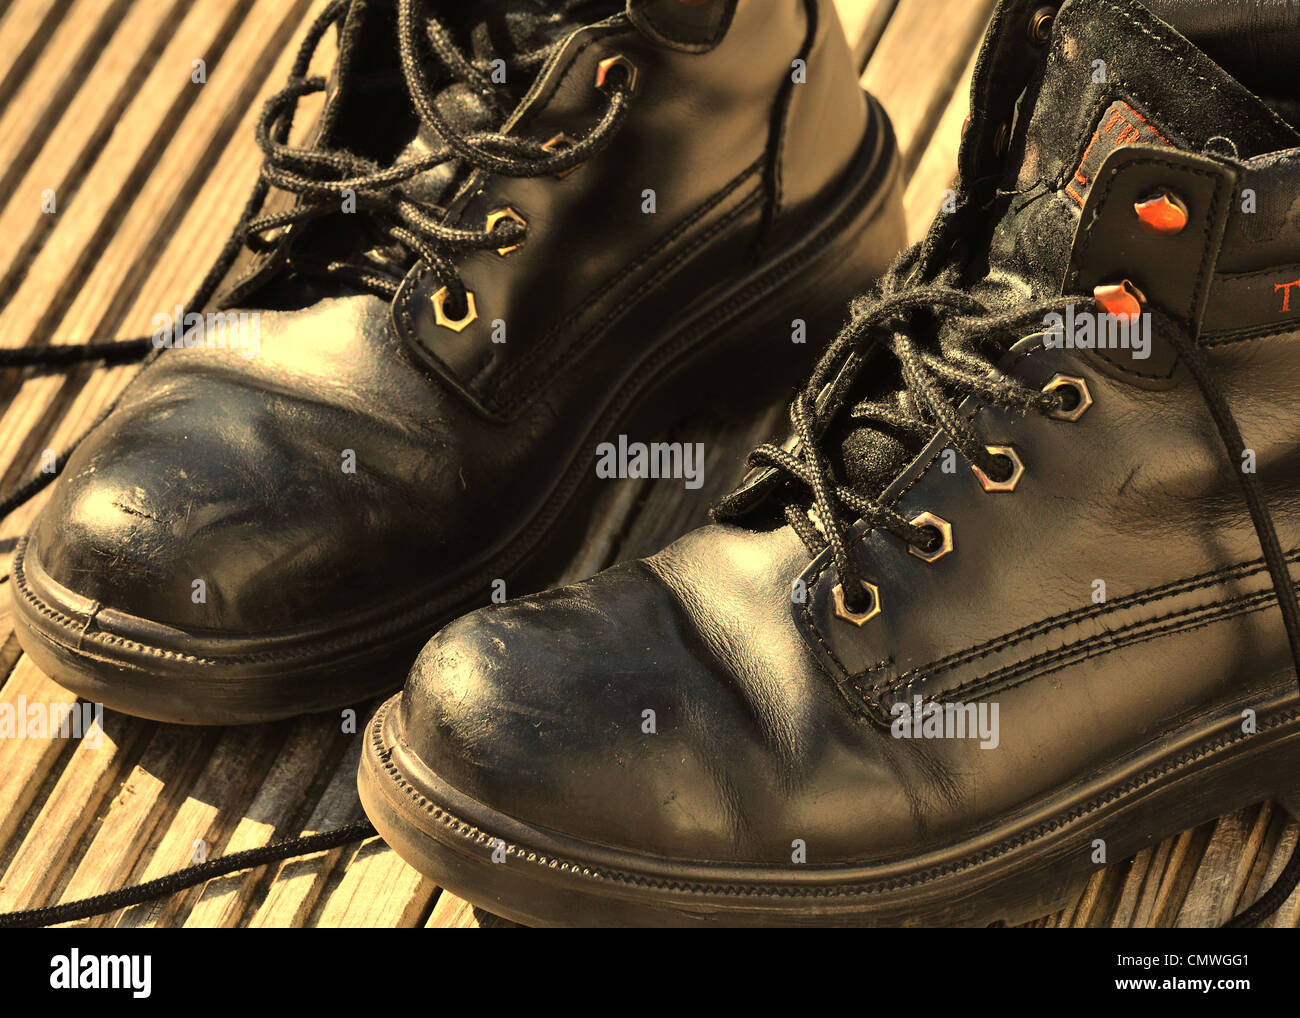 A pair of old black boots in sepia tones - Stock Image